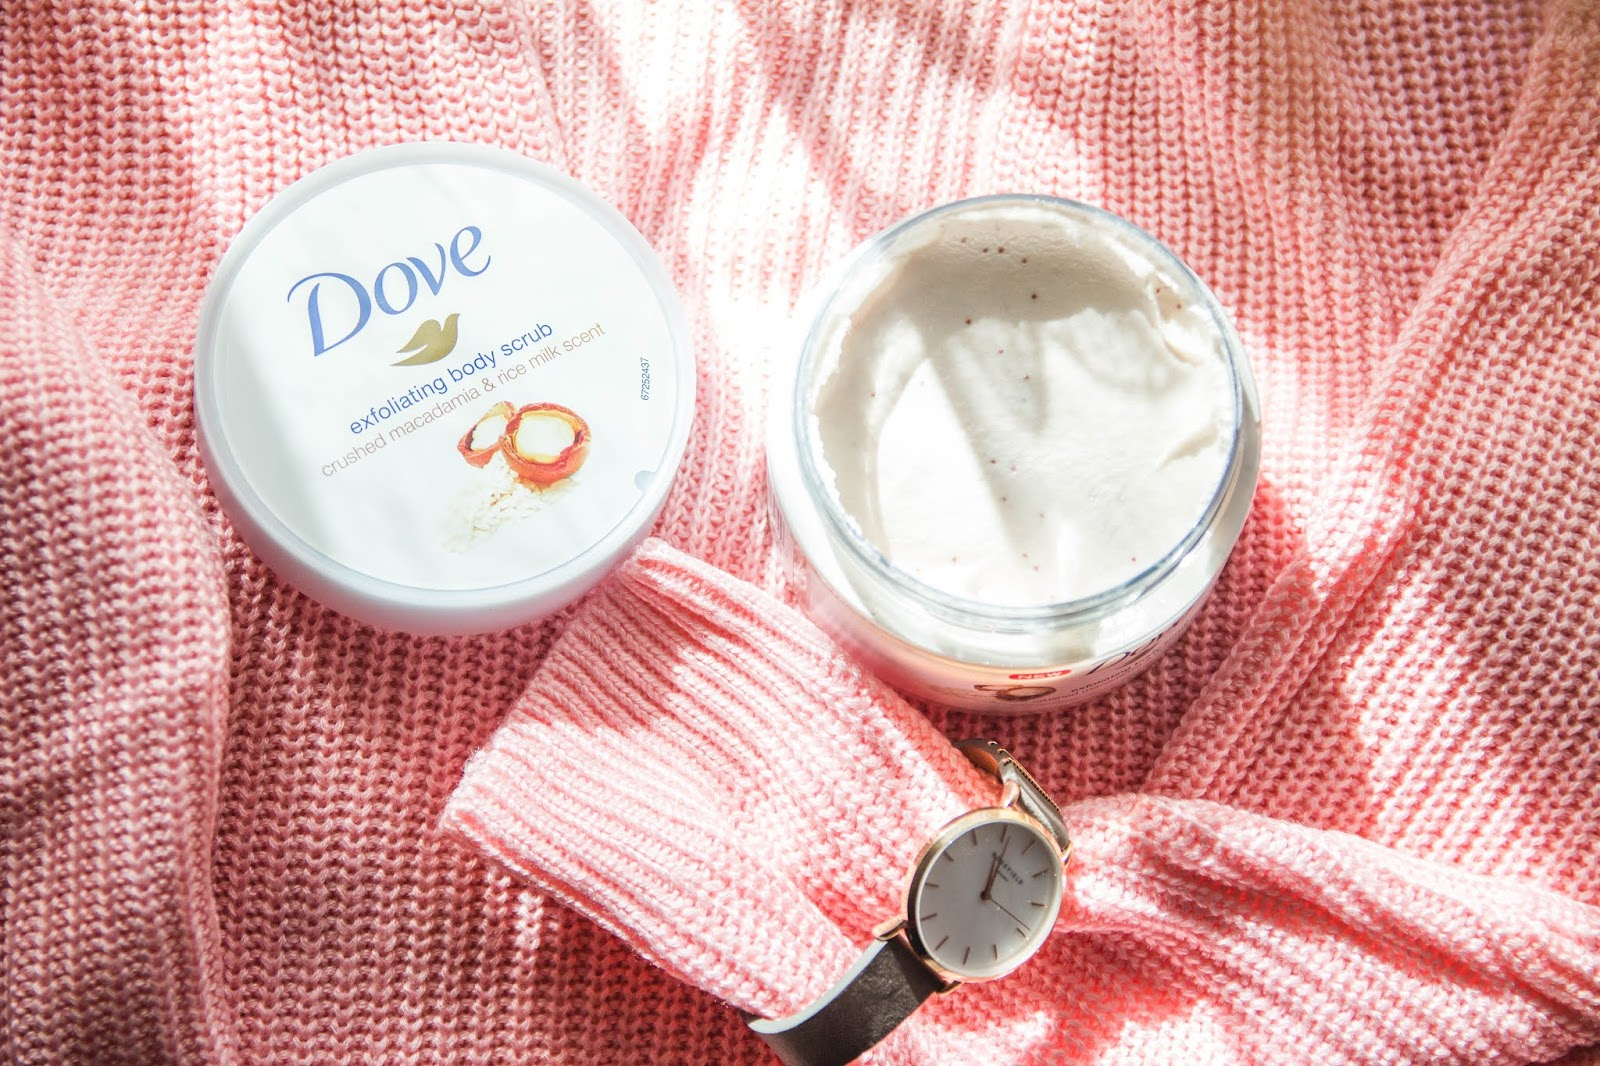 Dove Exfoliating Body Scrub Crushed Macadamia & Rice Milk